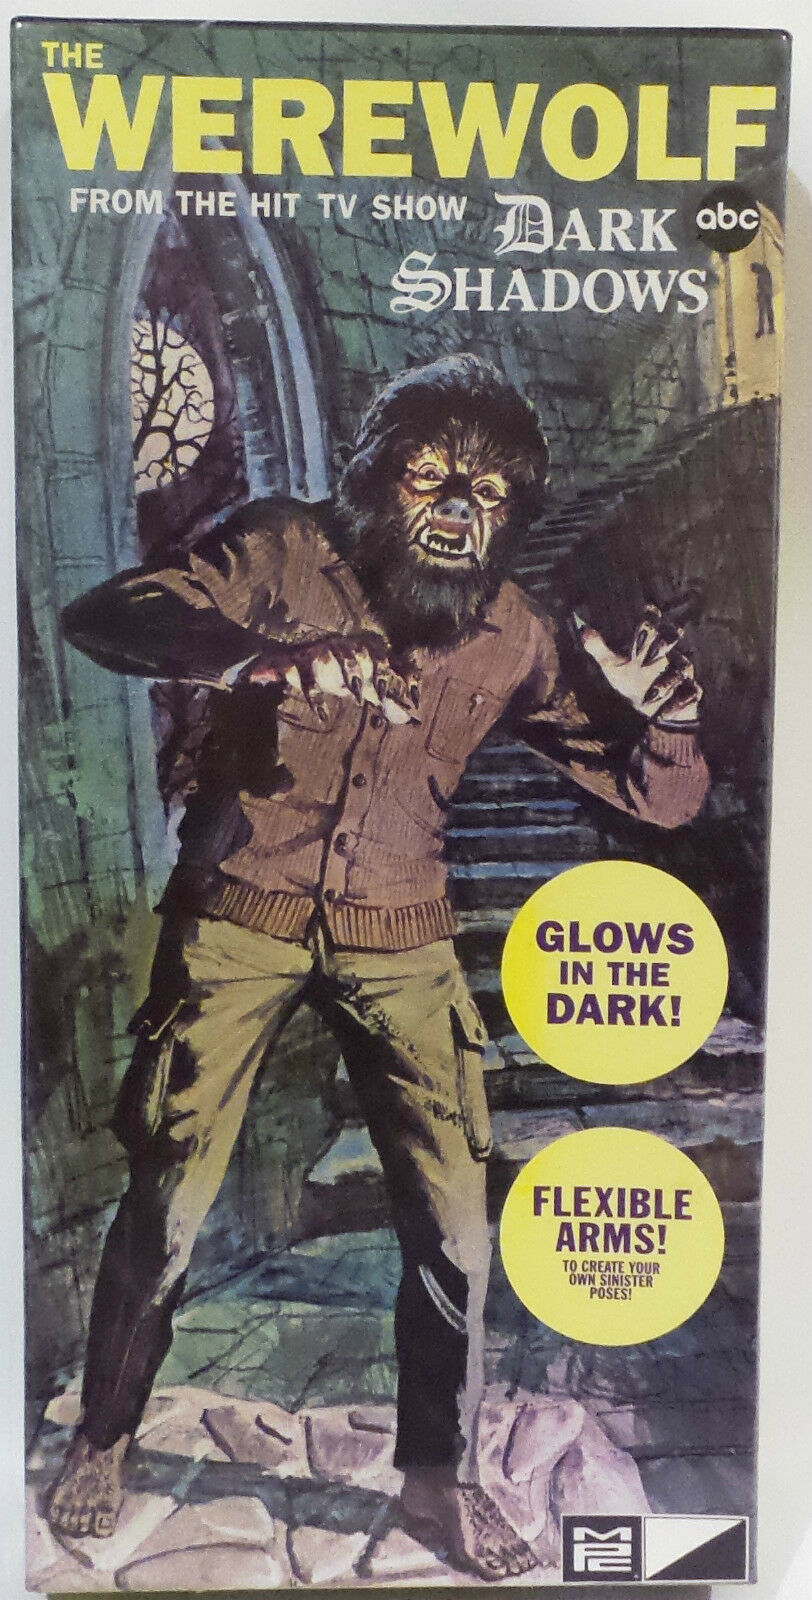 HORROR   THE WEREWOLF PLASTIC MODEL KIT MADE IN 2011. FROM THE SHOW DARK SHADOWS